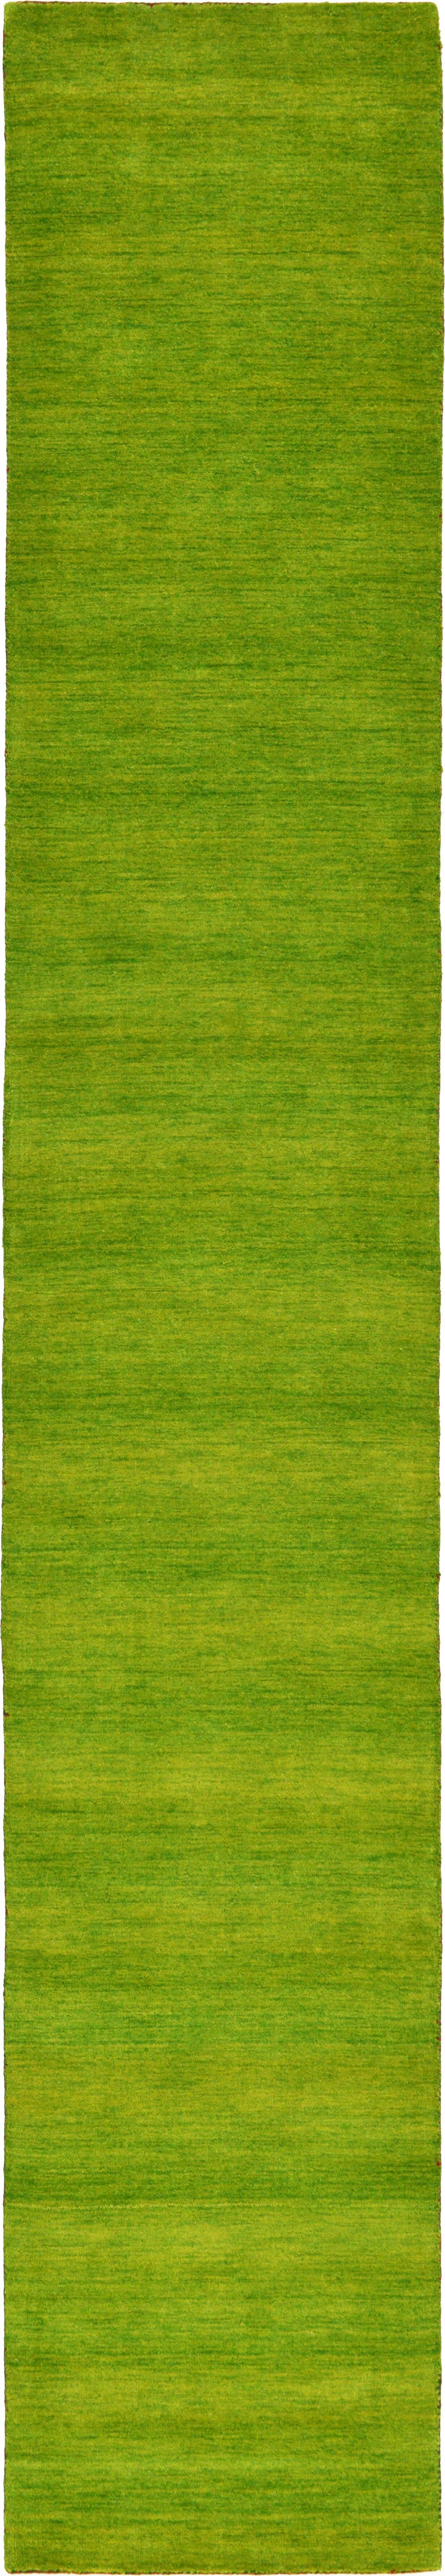 Taul Hand-Knotted Wool Green Area Rug Rug Size: 2' 7 x 16' 5